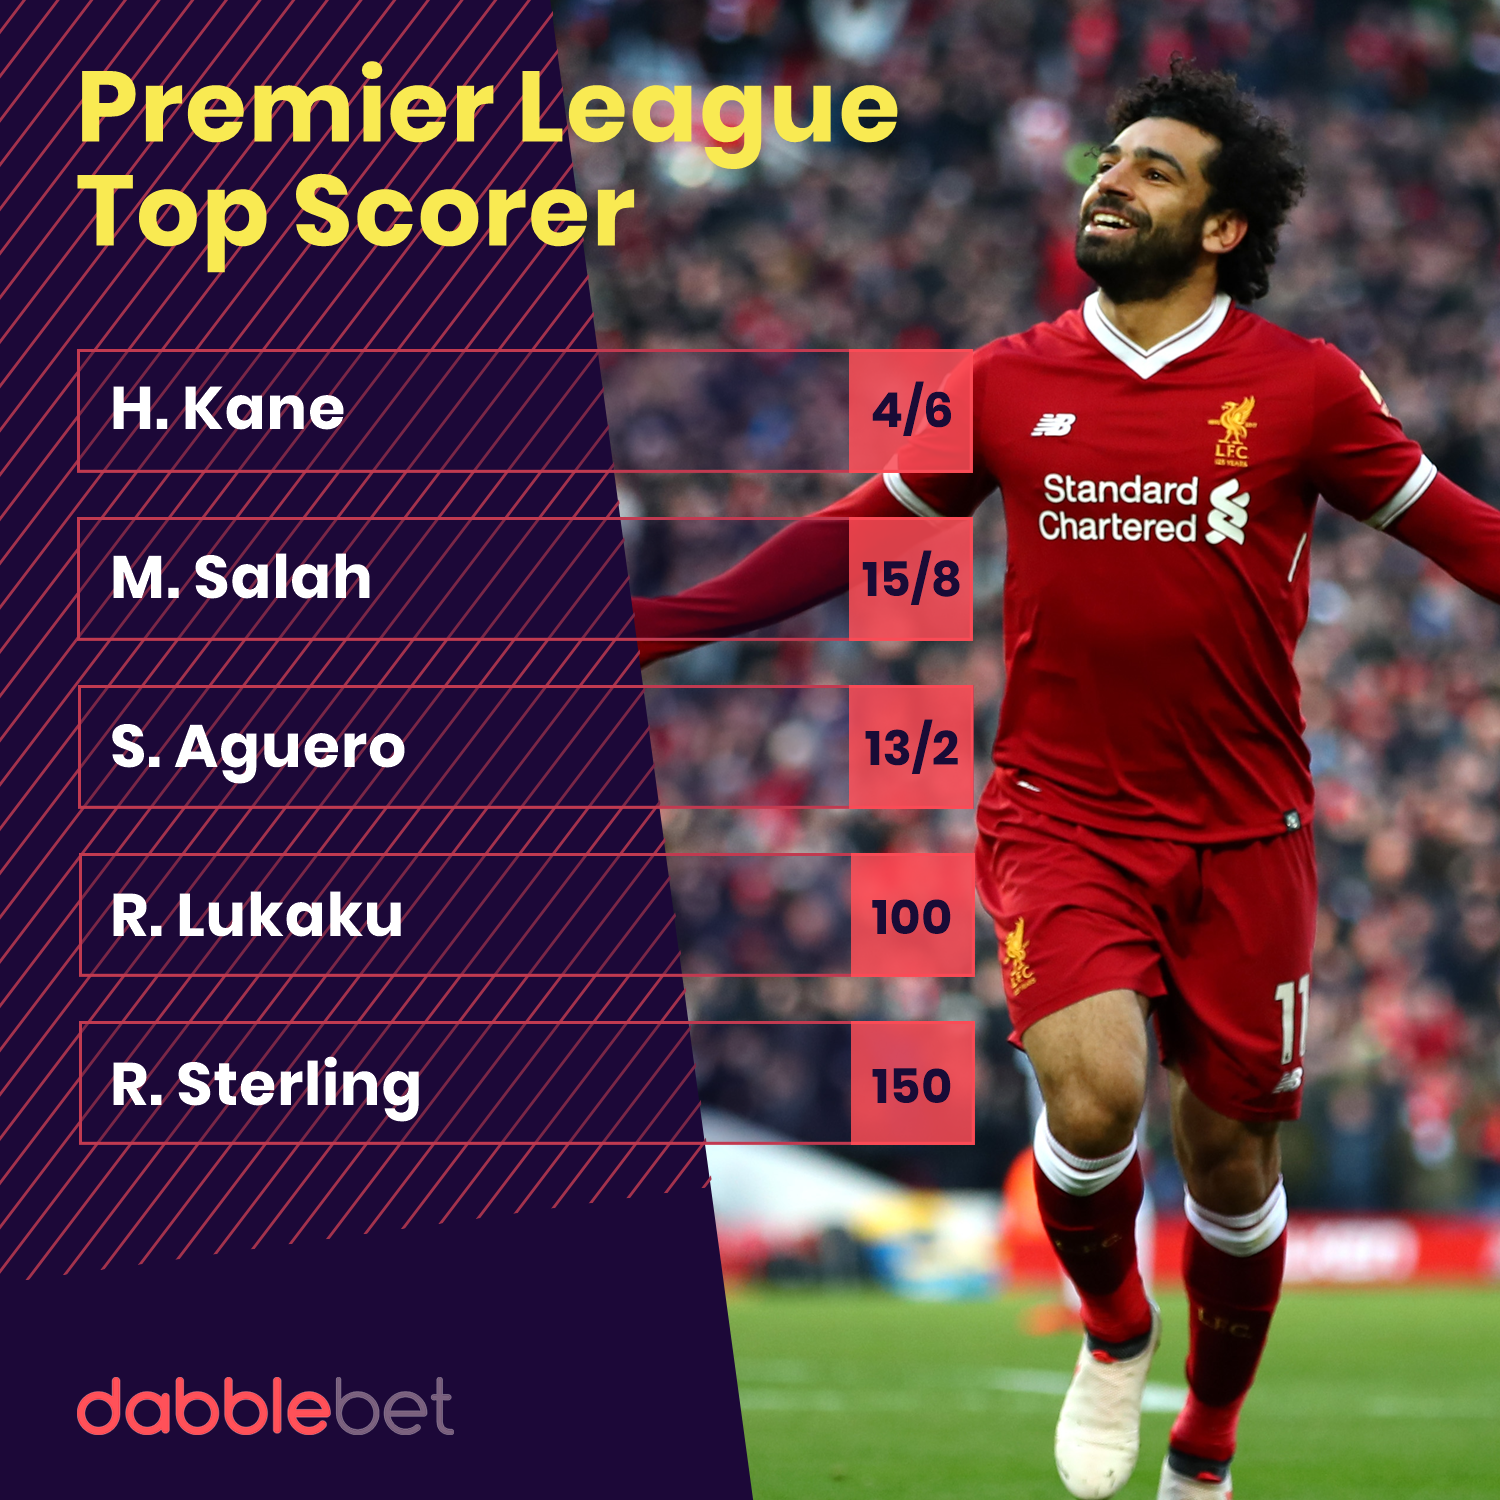 Premier League Top Scorer